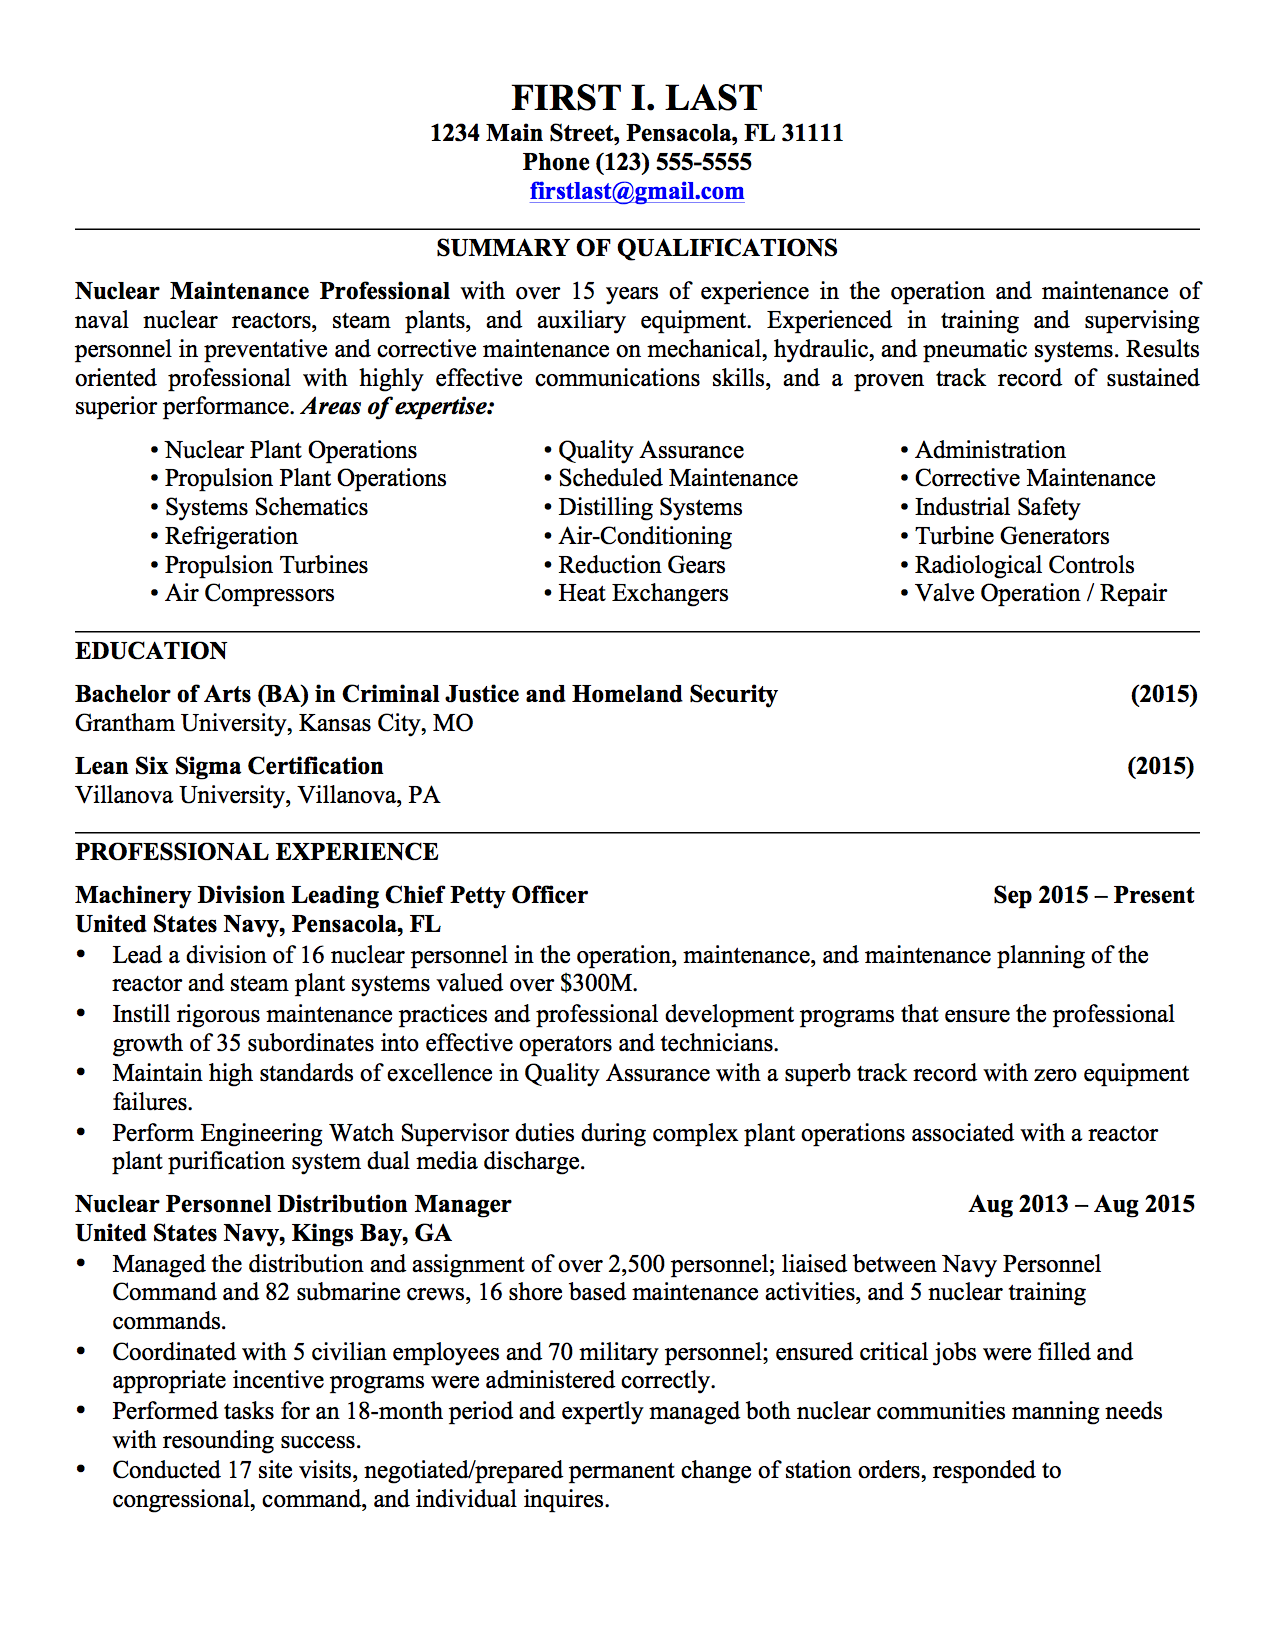 ePub] Free Military To Civilian Resume Template - 8.2MB